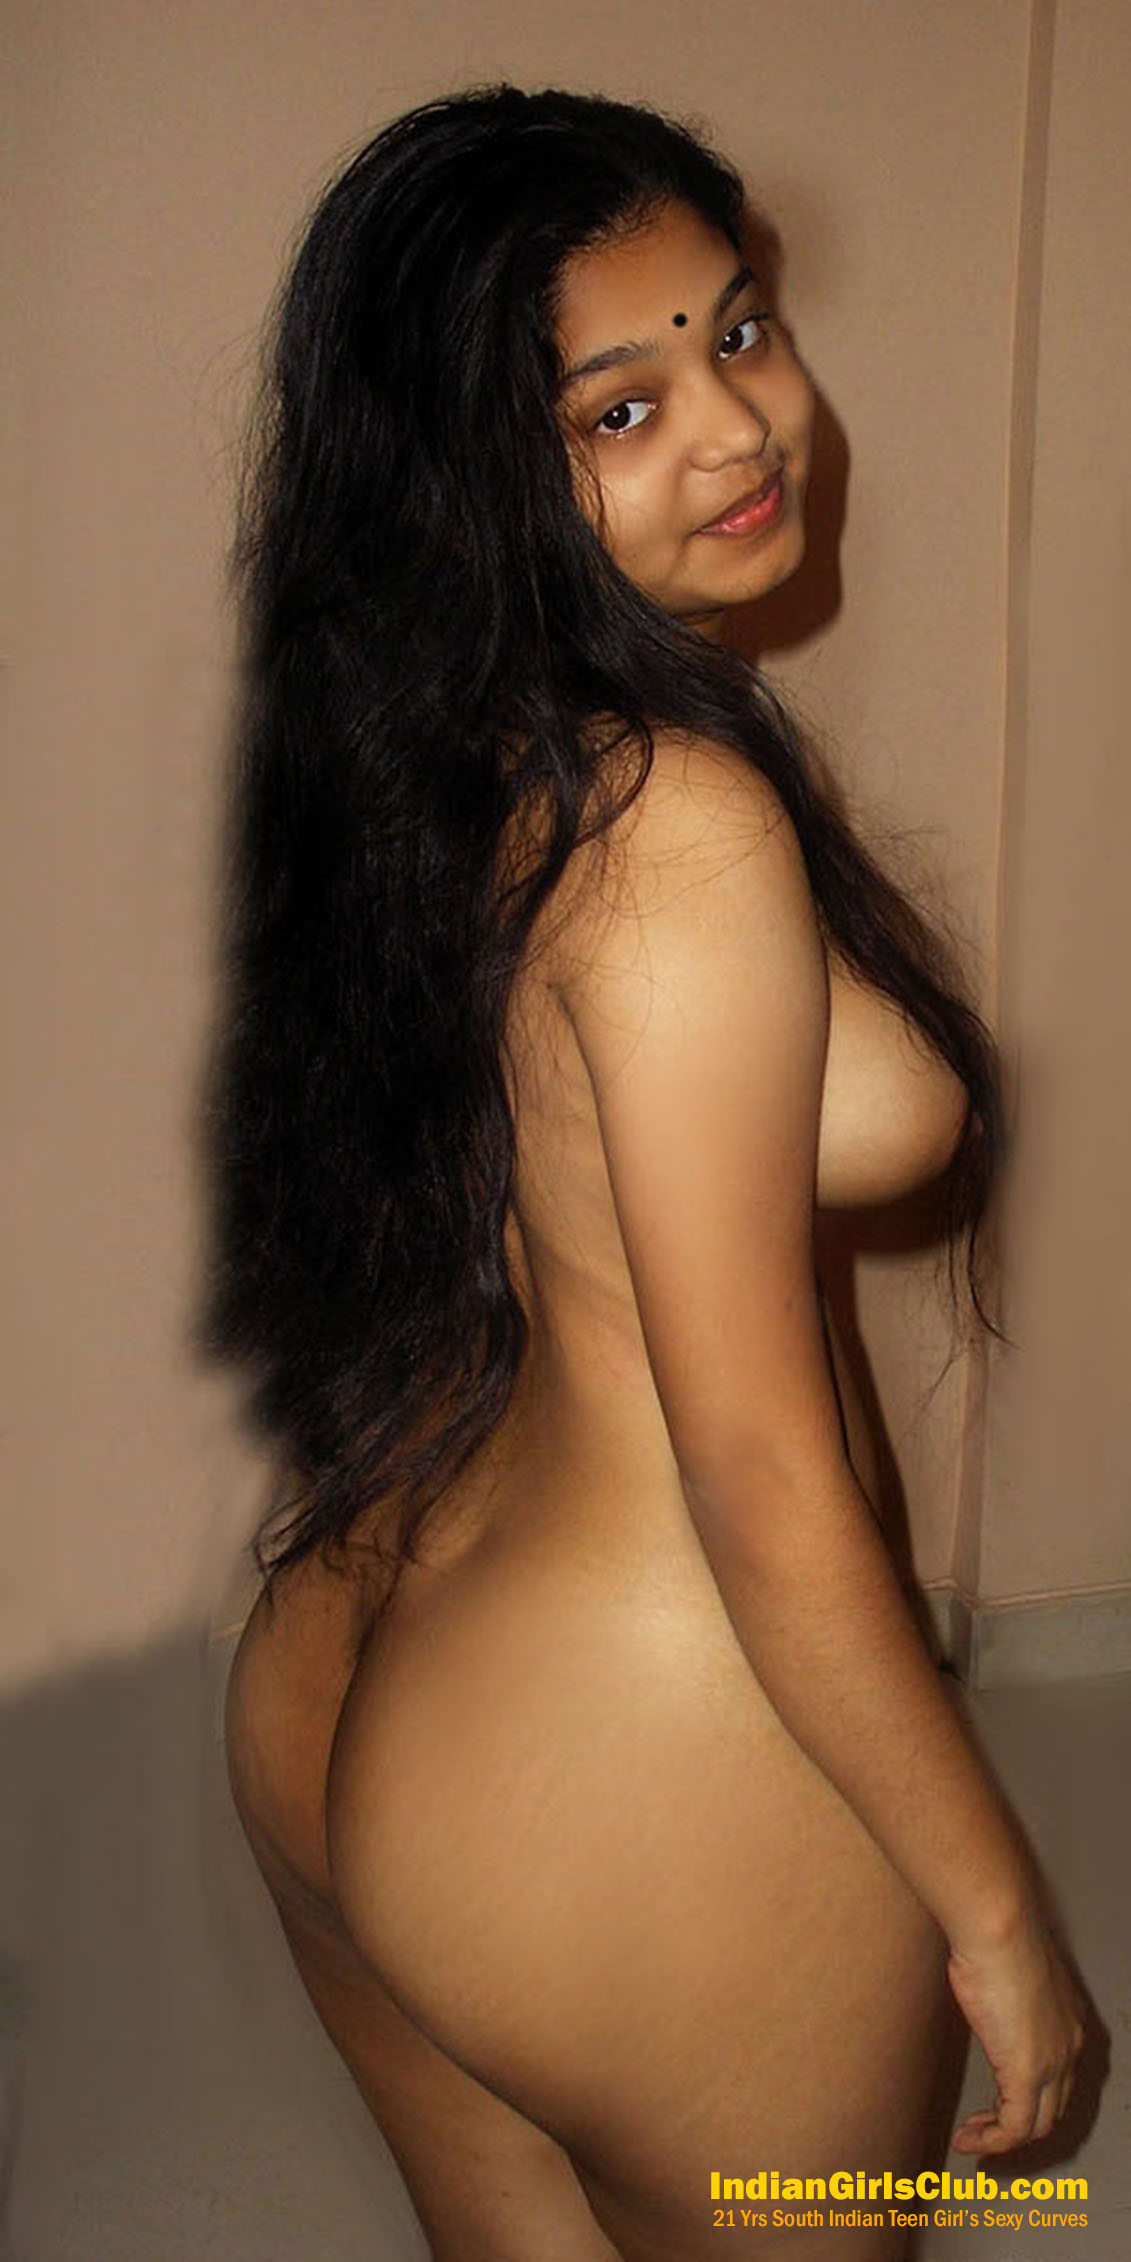 nude girls South indian american